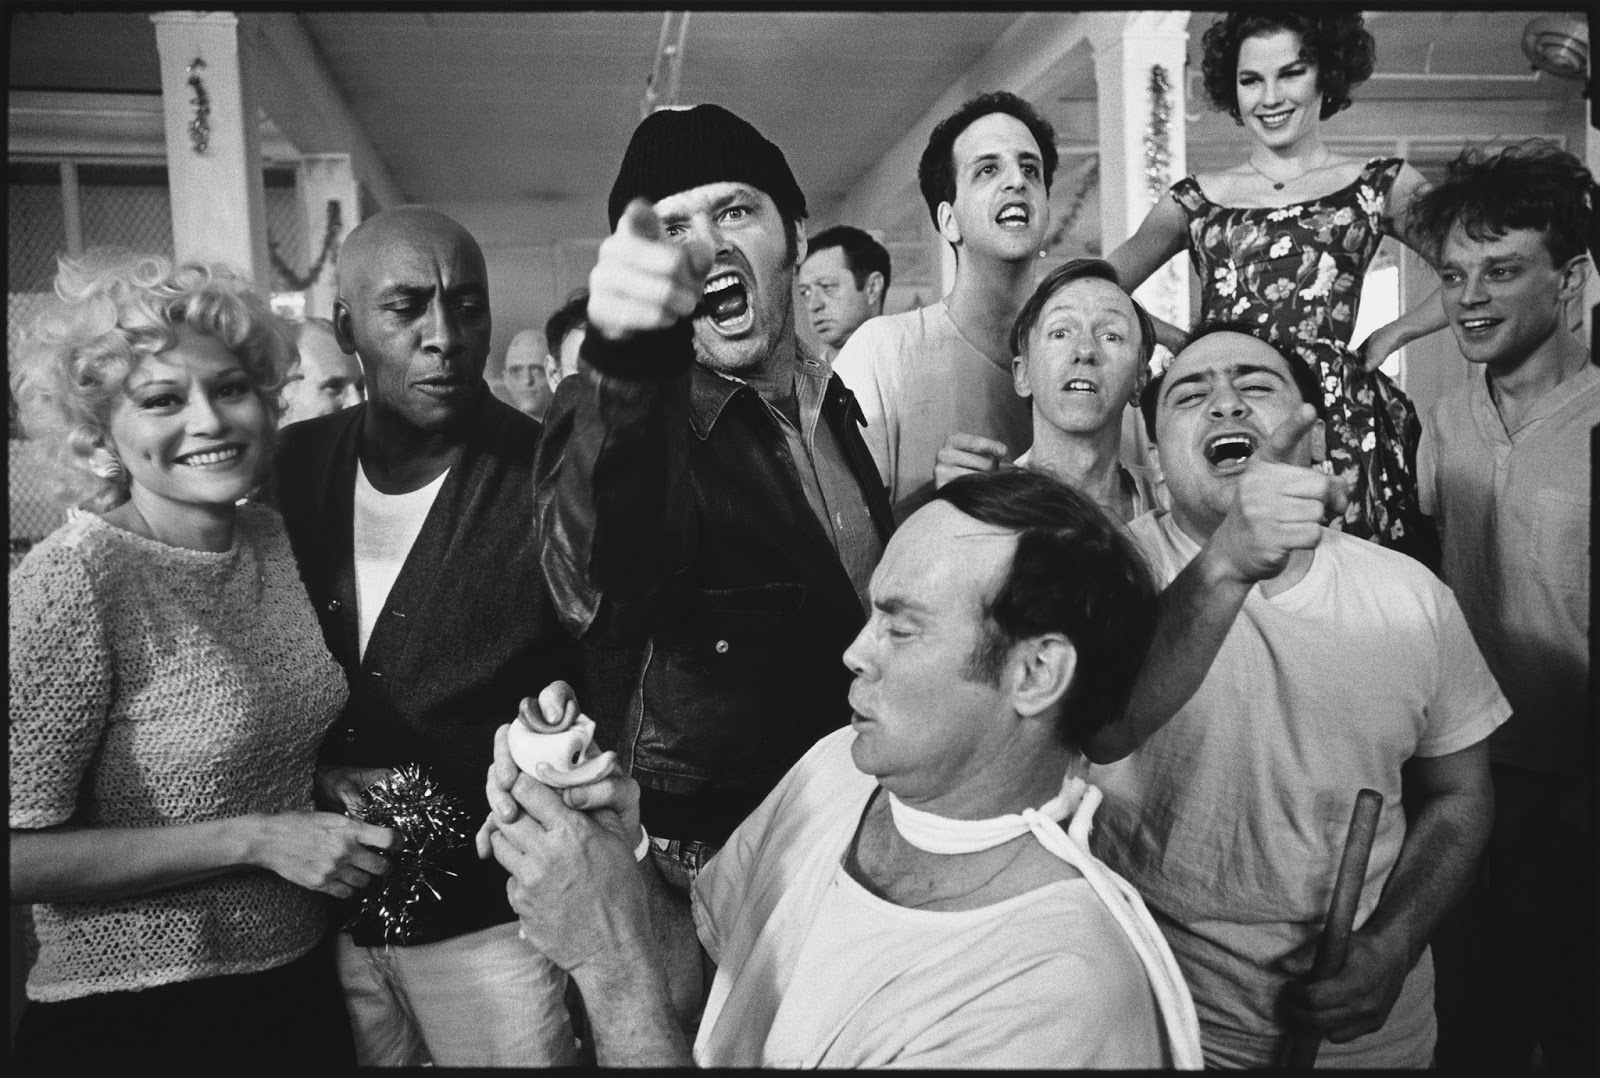 Here, below is a collection of 28 rare and iconic black and white photos of  behind the scenes from One Flew Over the Cuckoo's Nest.